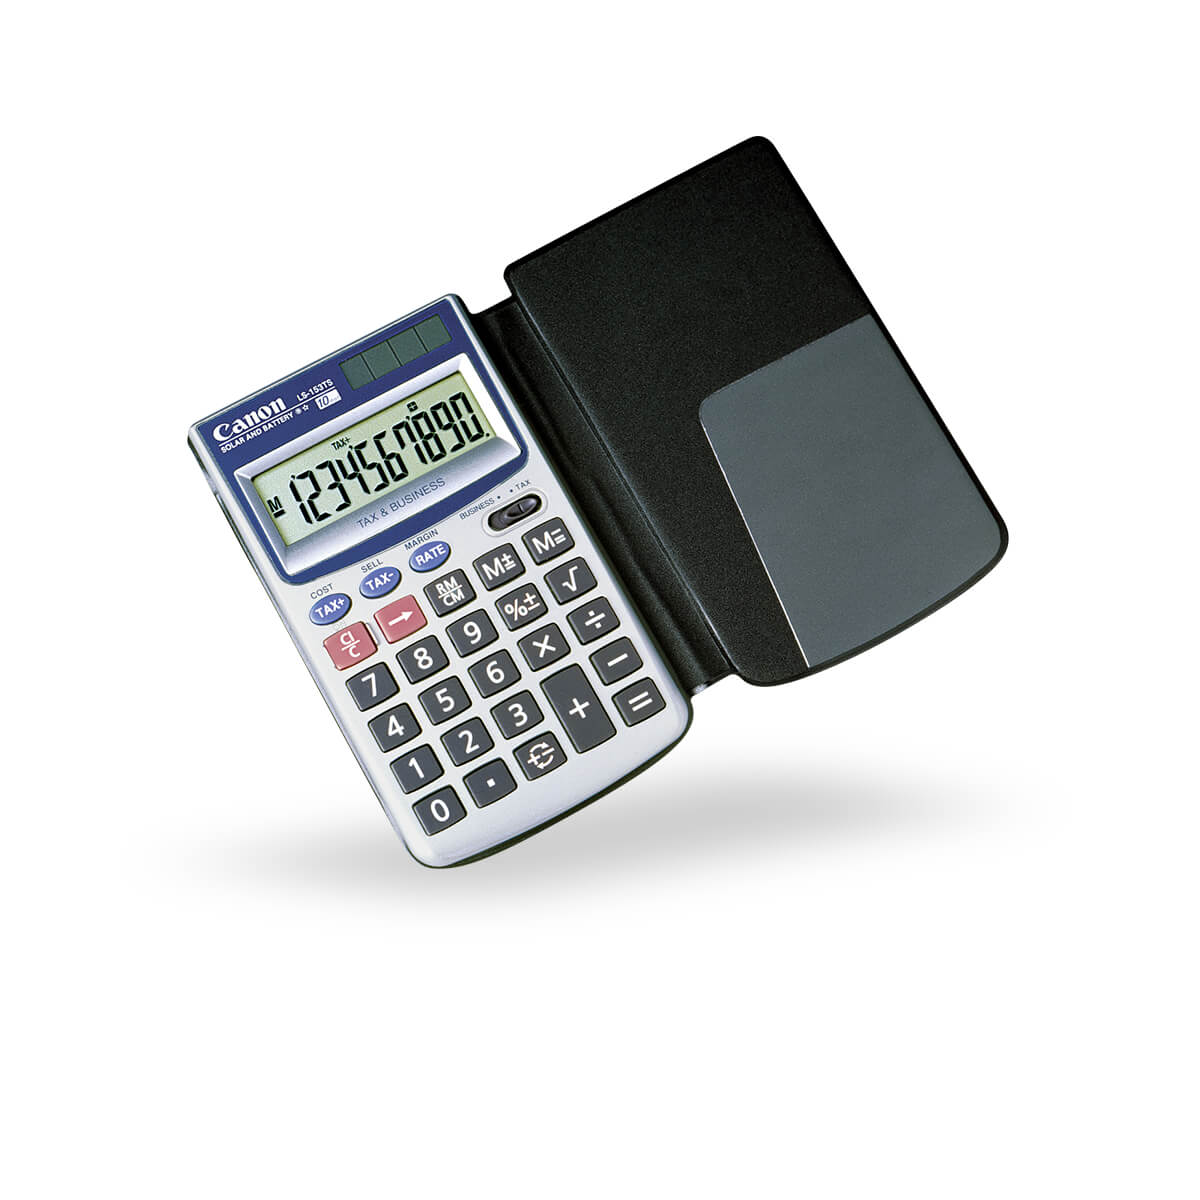 Canon LS-153TS business pocket calculator